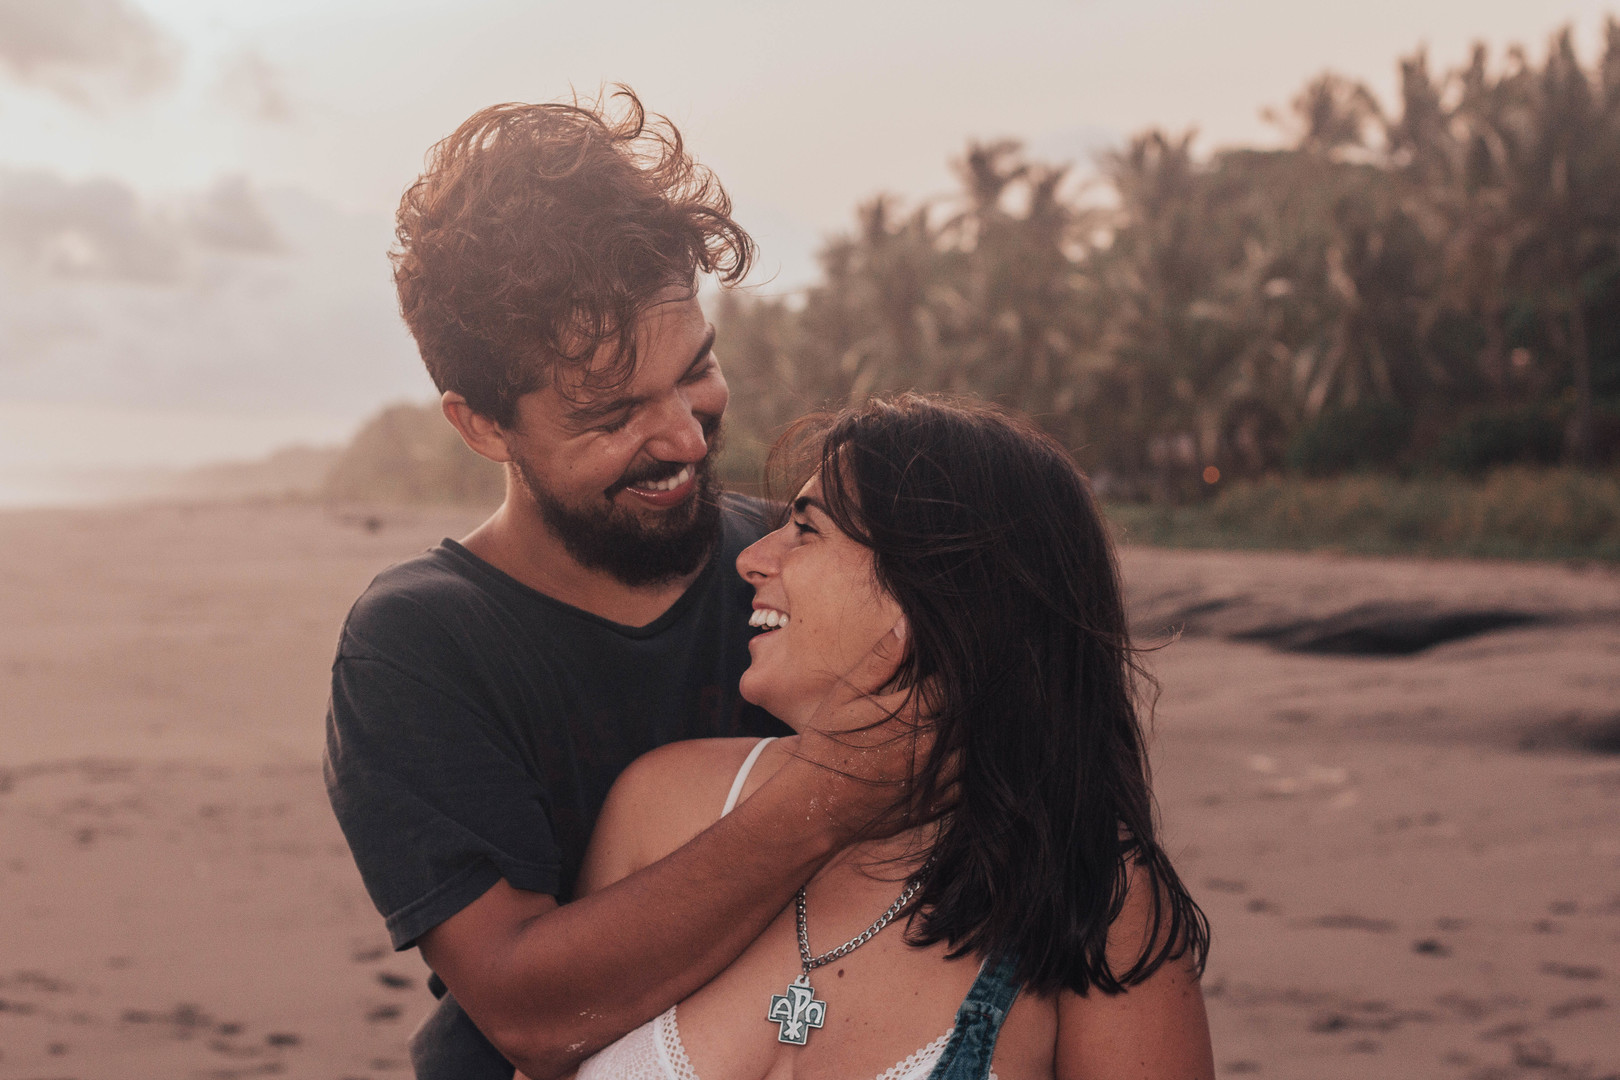 Agustina & David's Engagement Shoot In Playa Bejuco, Costa Rica. Photography by SunRae Photography, LLC for Destination Wedding network Adriana Weddings